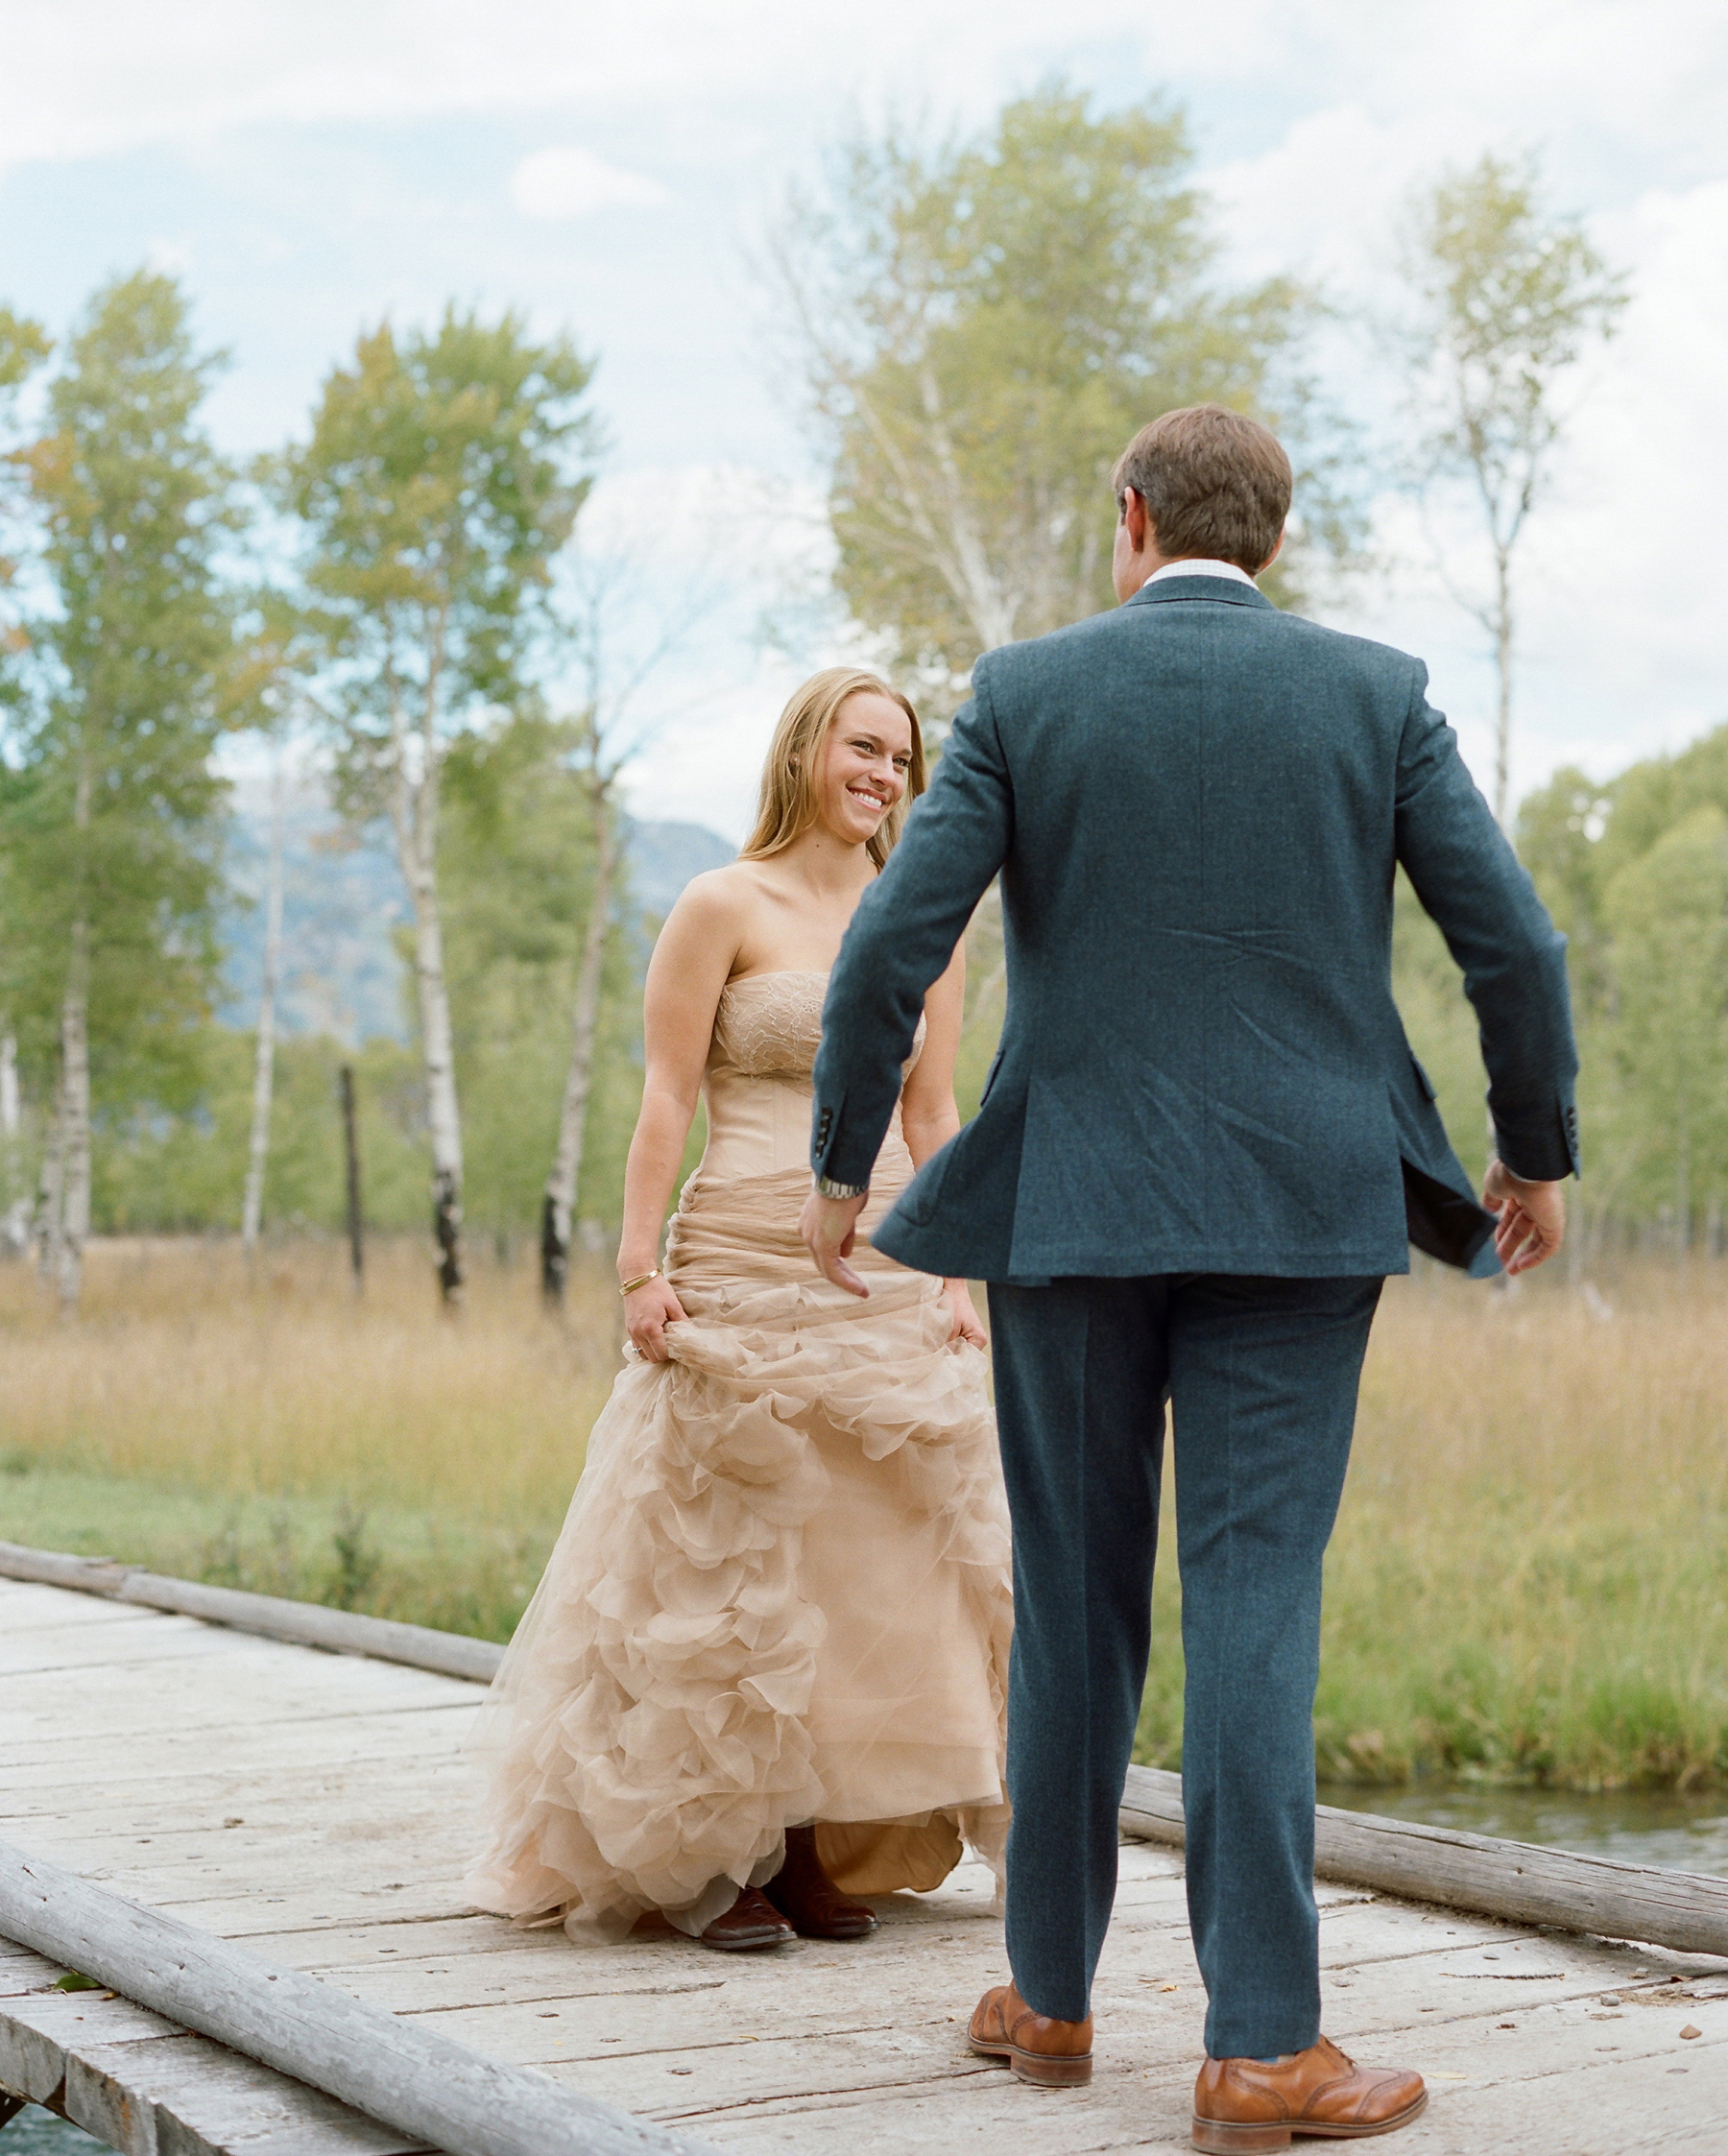 callie-eric-wedding-firstlook-088-s112113-0815.jpg